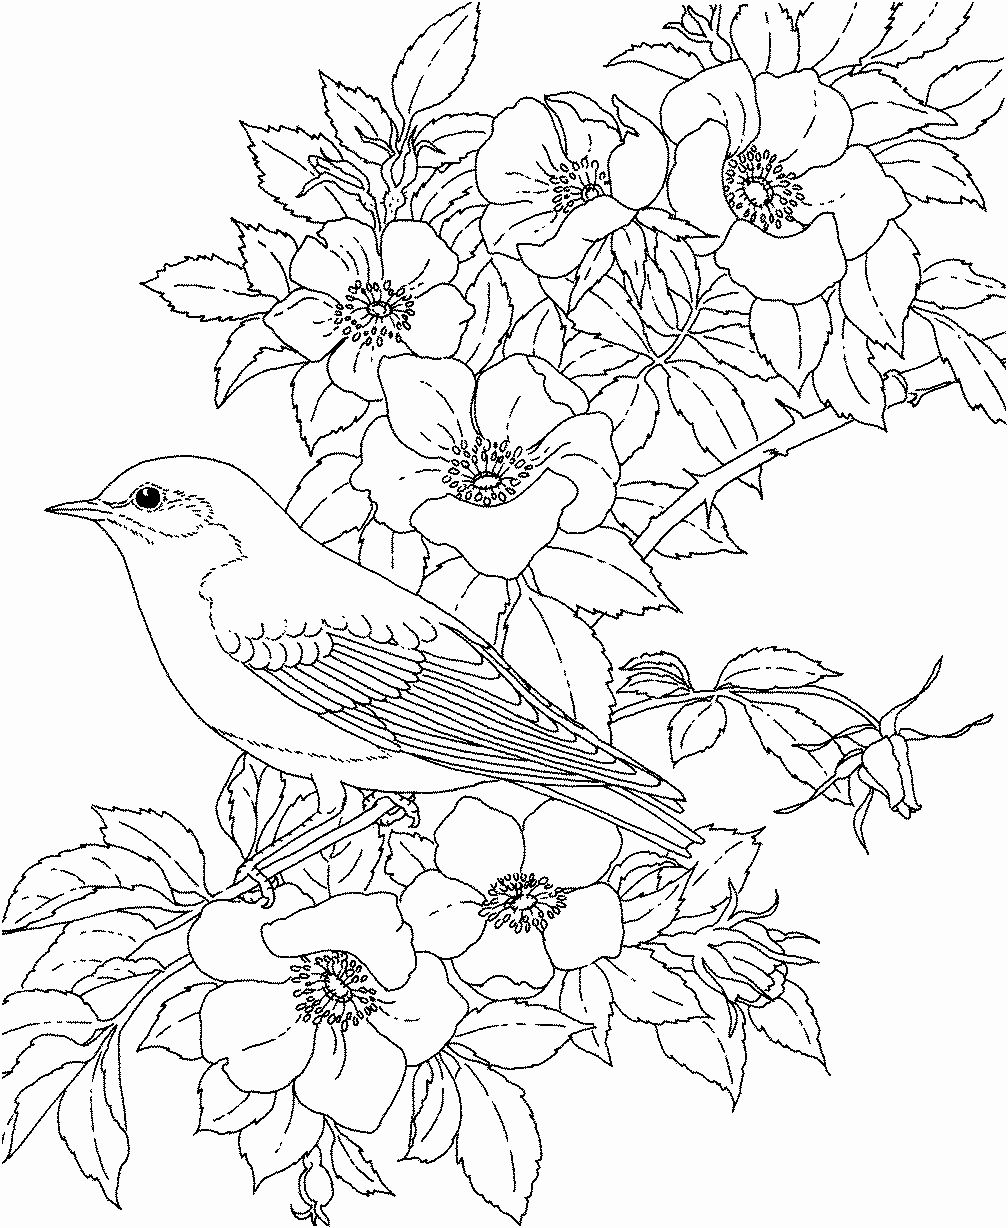 spring birds coloring pages bird coloring pages bird coloring pages spring coloring birds spring pages coloring